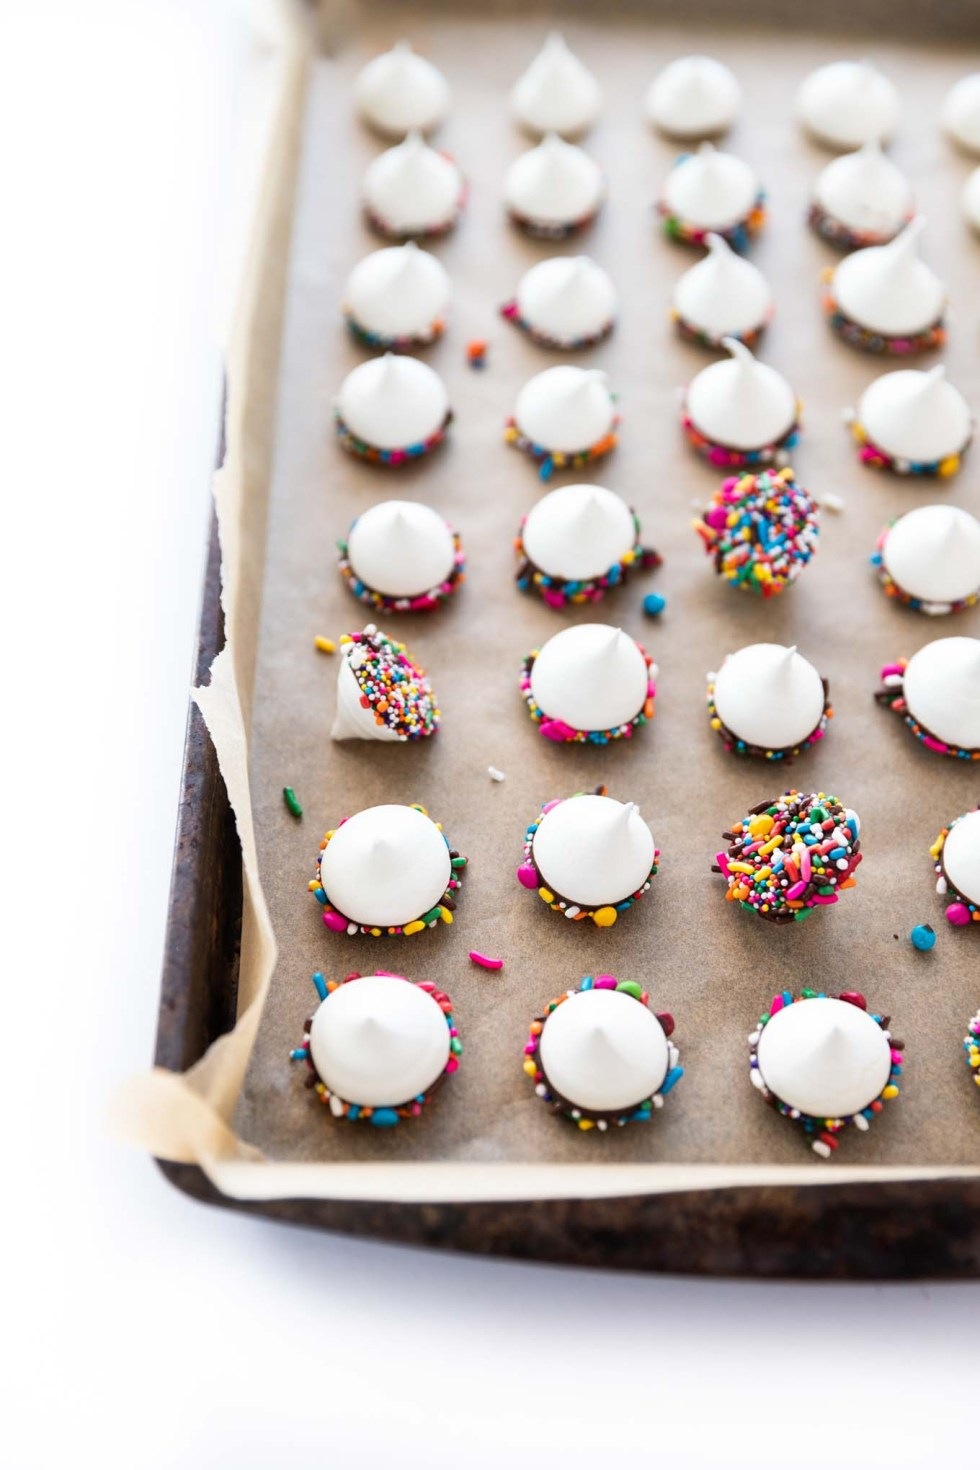 White meringue kisses covered in chocolate and sprinkles with a few tipped over to show their sprinkle casing.